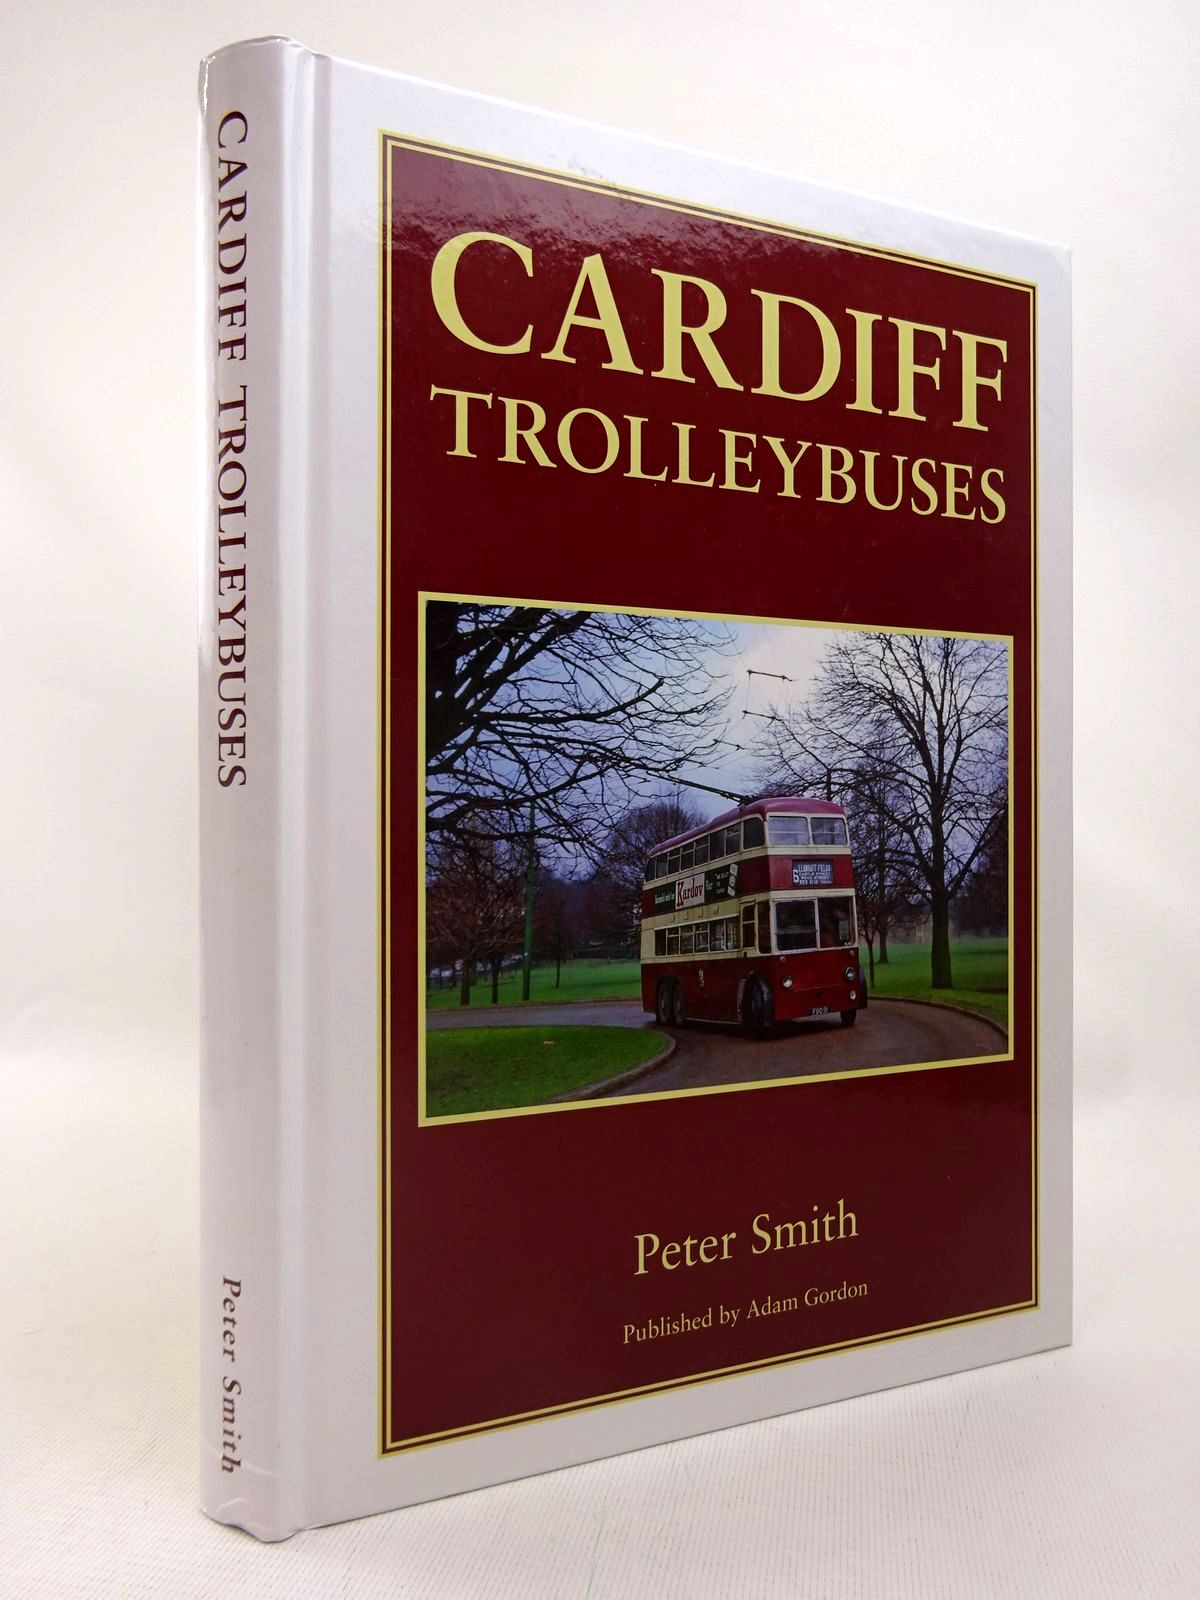 Photo of CARDIFF TROLLEYBUSES written by Smith, Peter published by Adam Gordon (STOCK CODE: 1816695)  for sale by Stella & Rose's Books